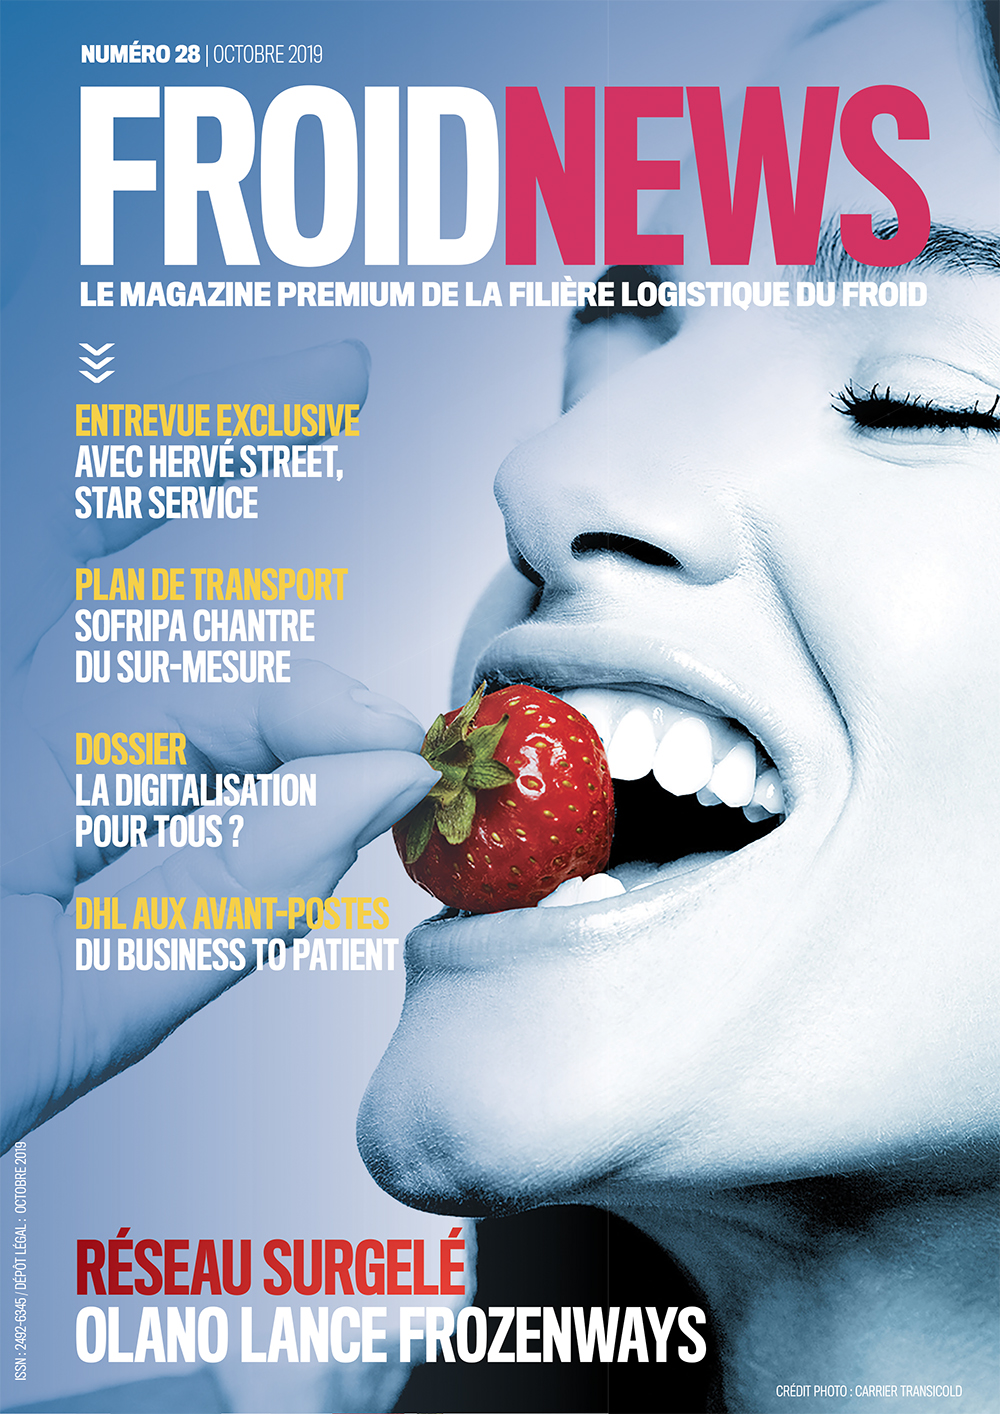 FROIDNEWS 28